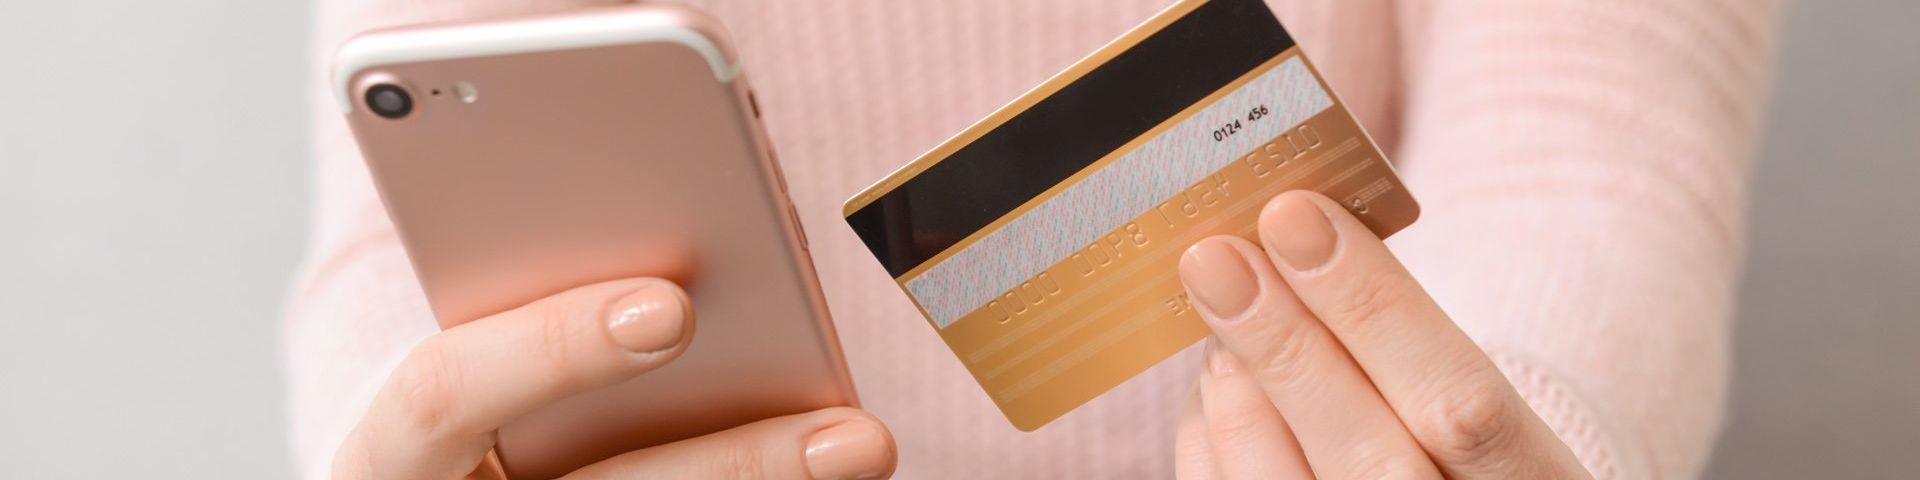 An unseen person in a pale pink sweater holds a pink smartphone in one hand and a credit card in the other.